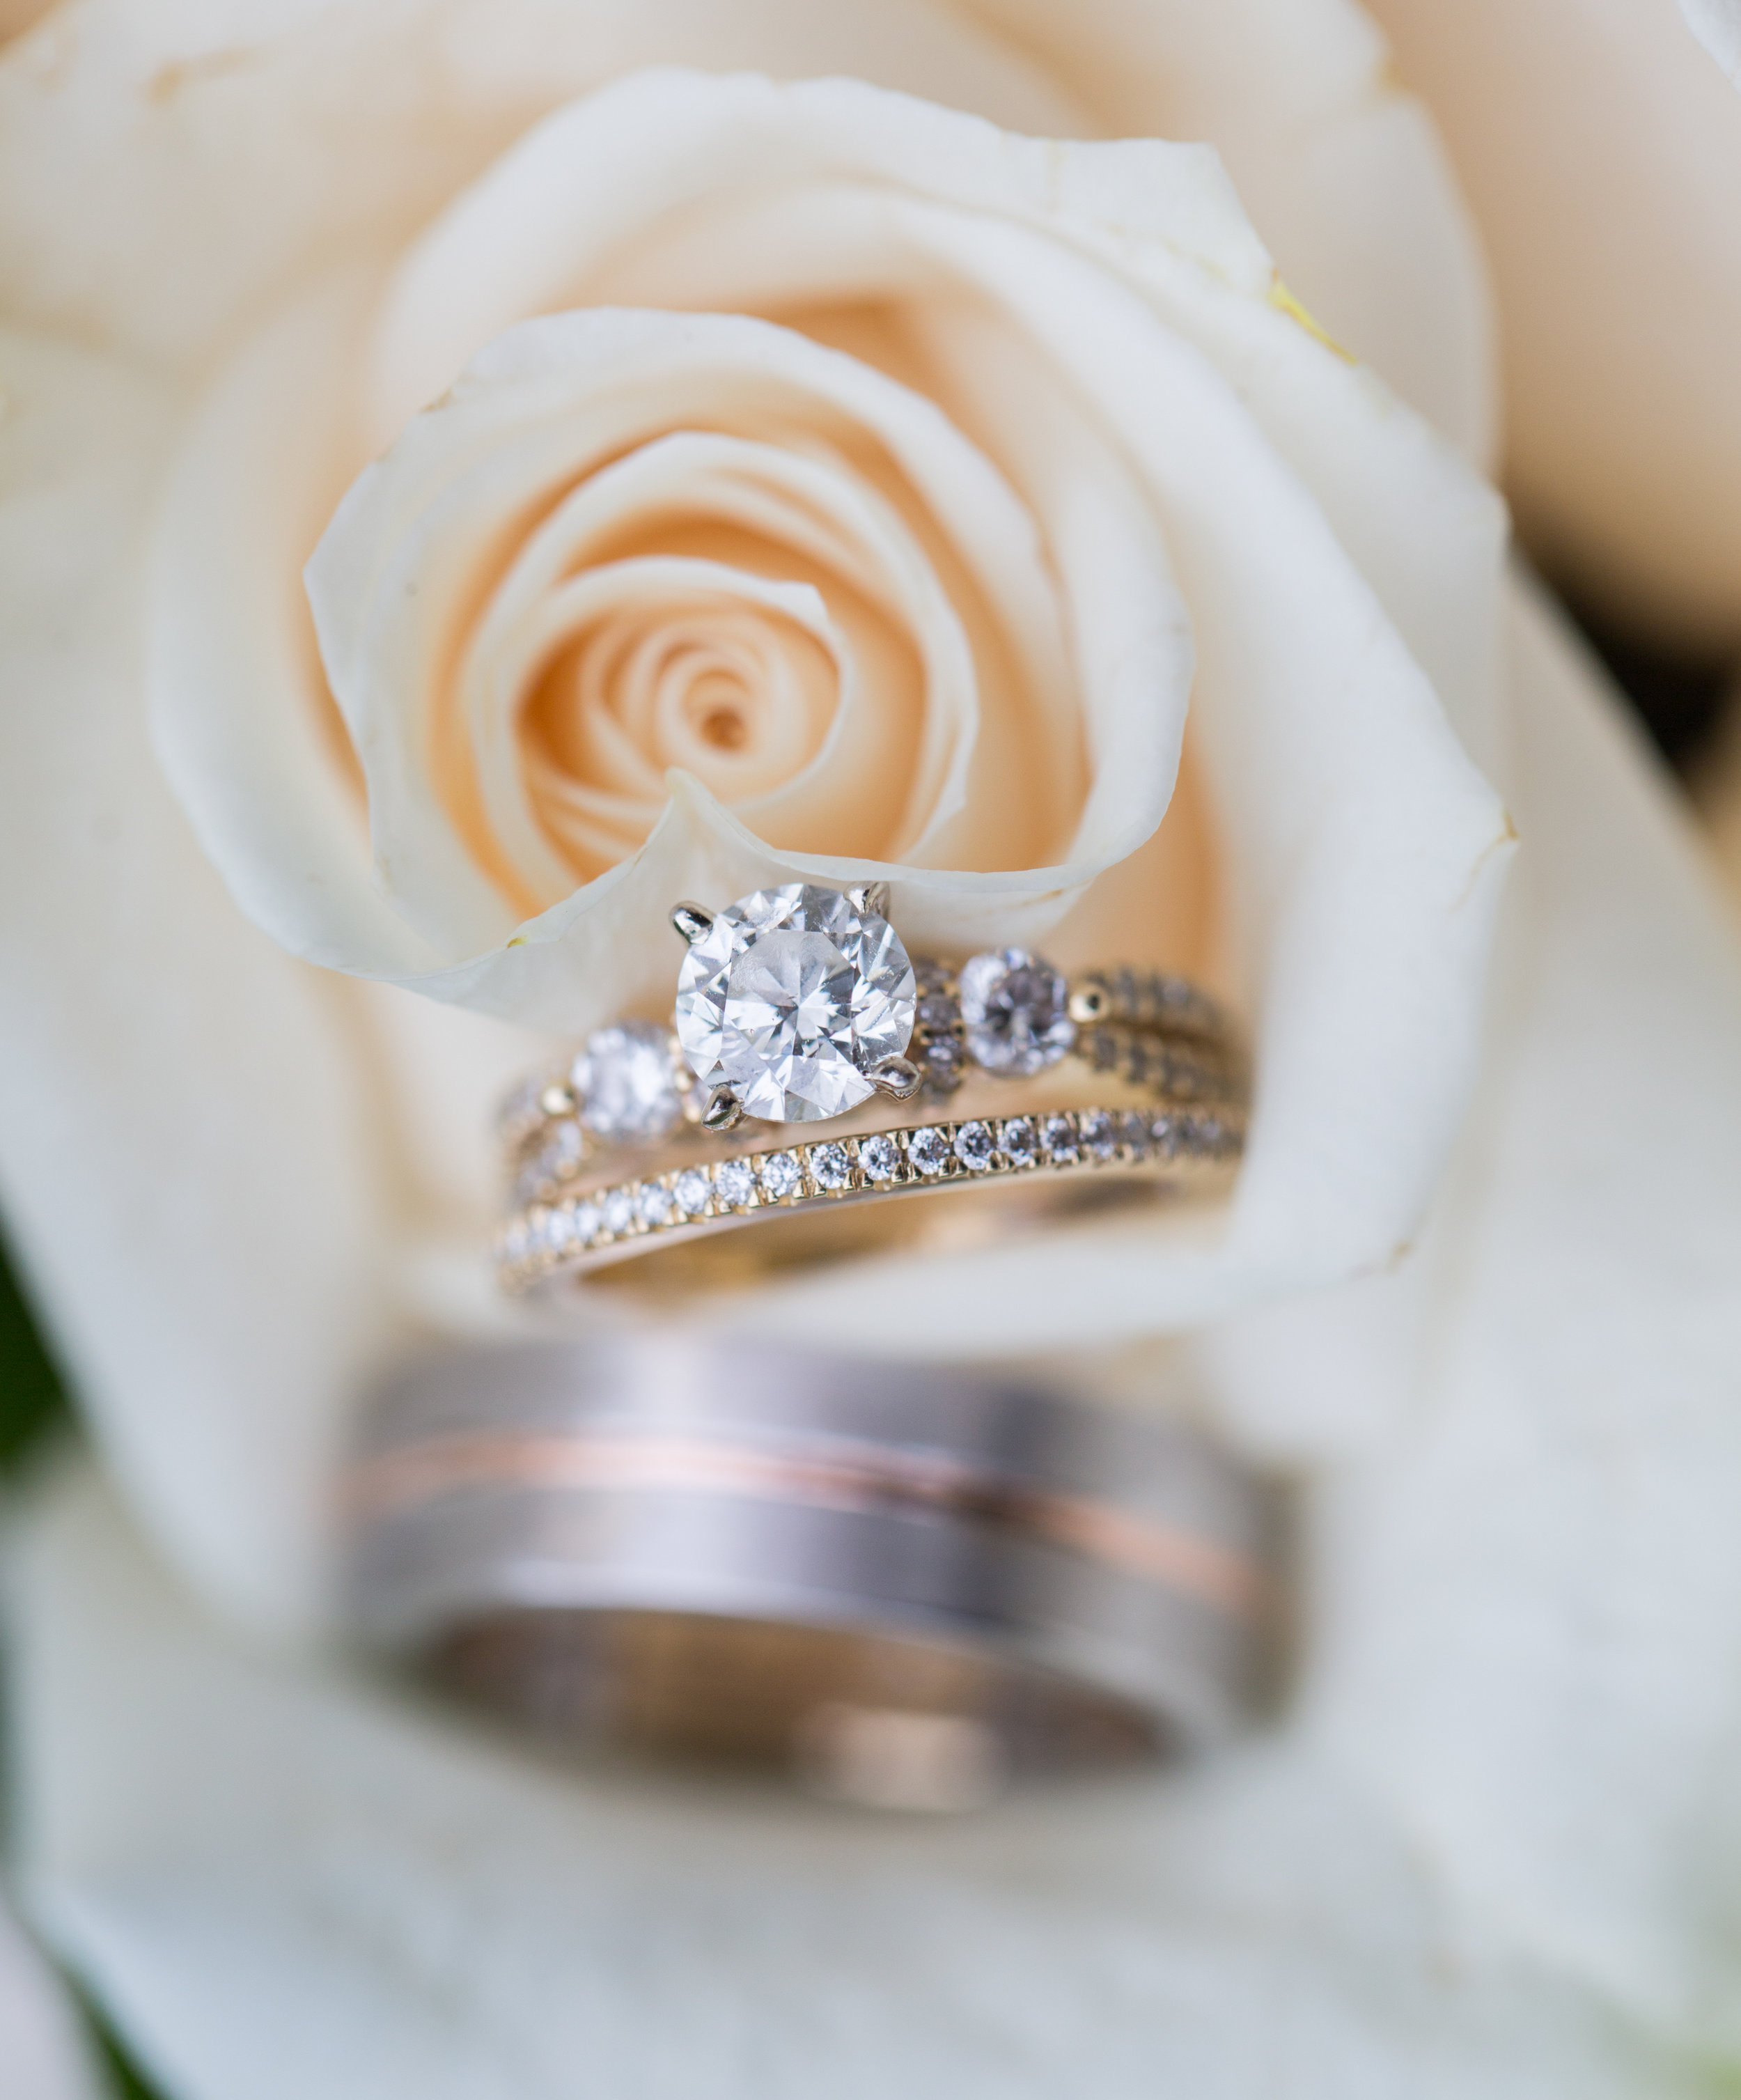 Wedding rings placed in one of the white roses in the bridal bouquet.